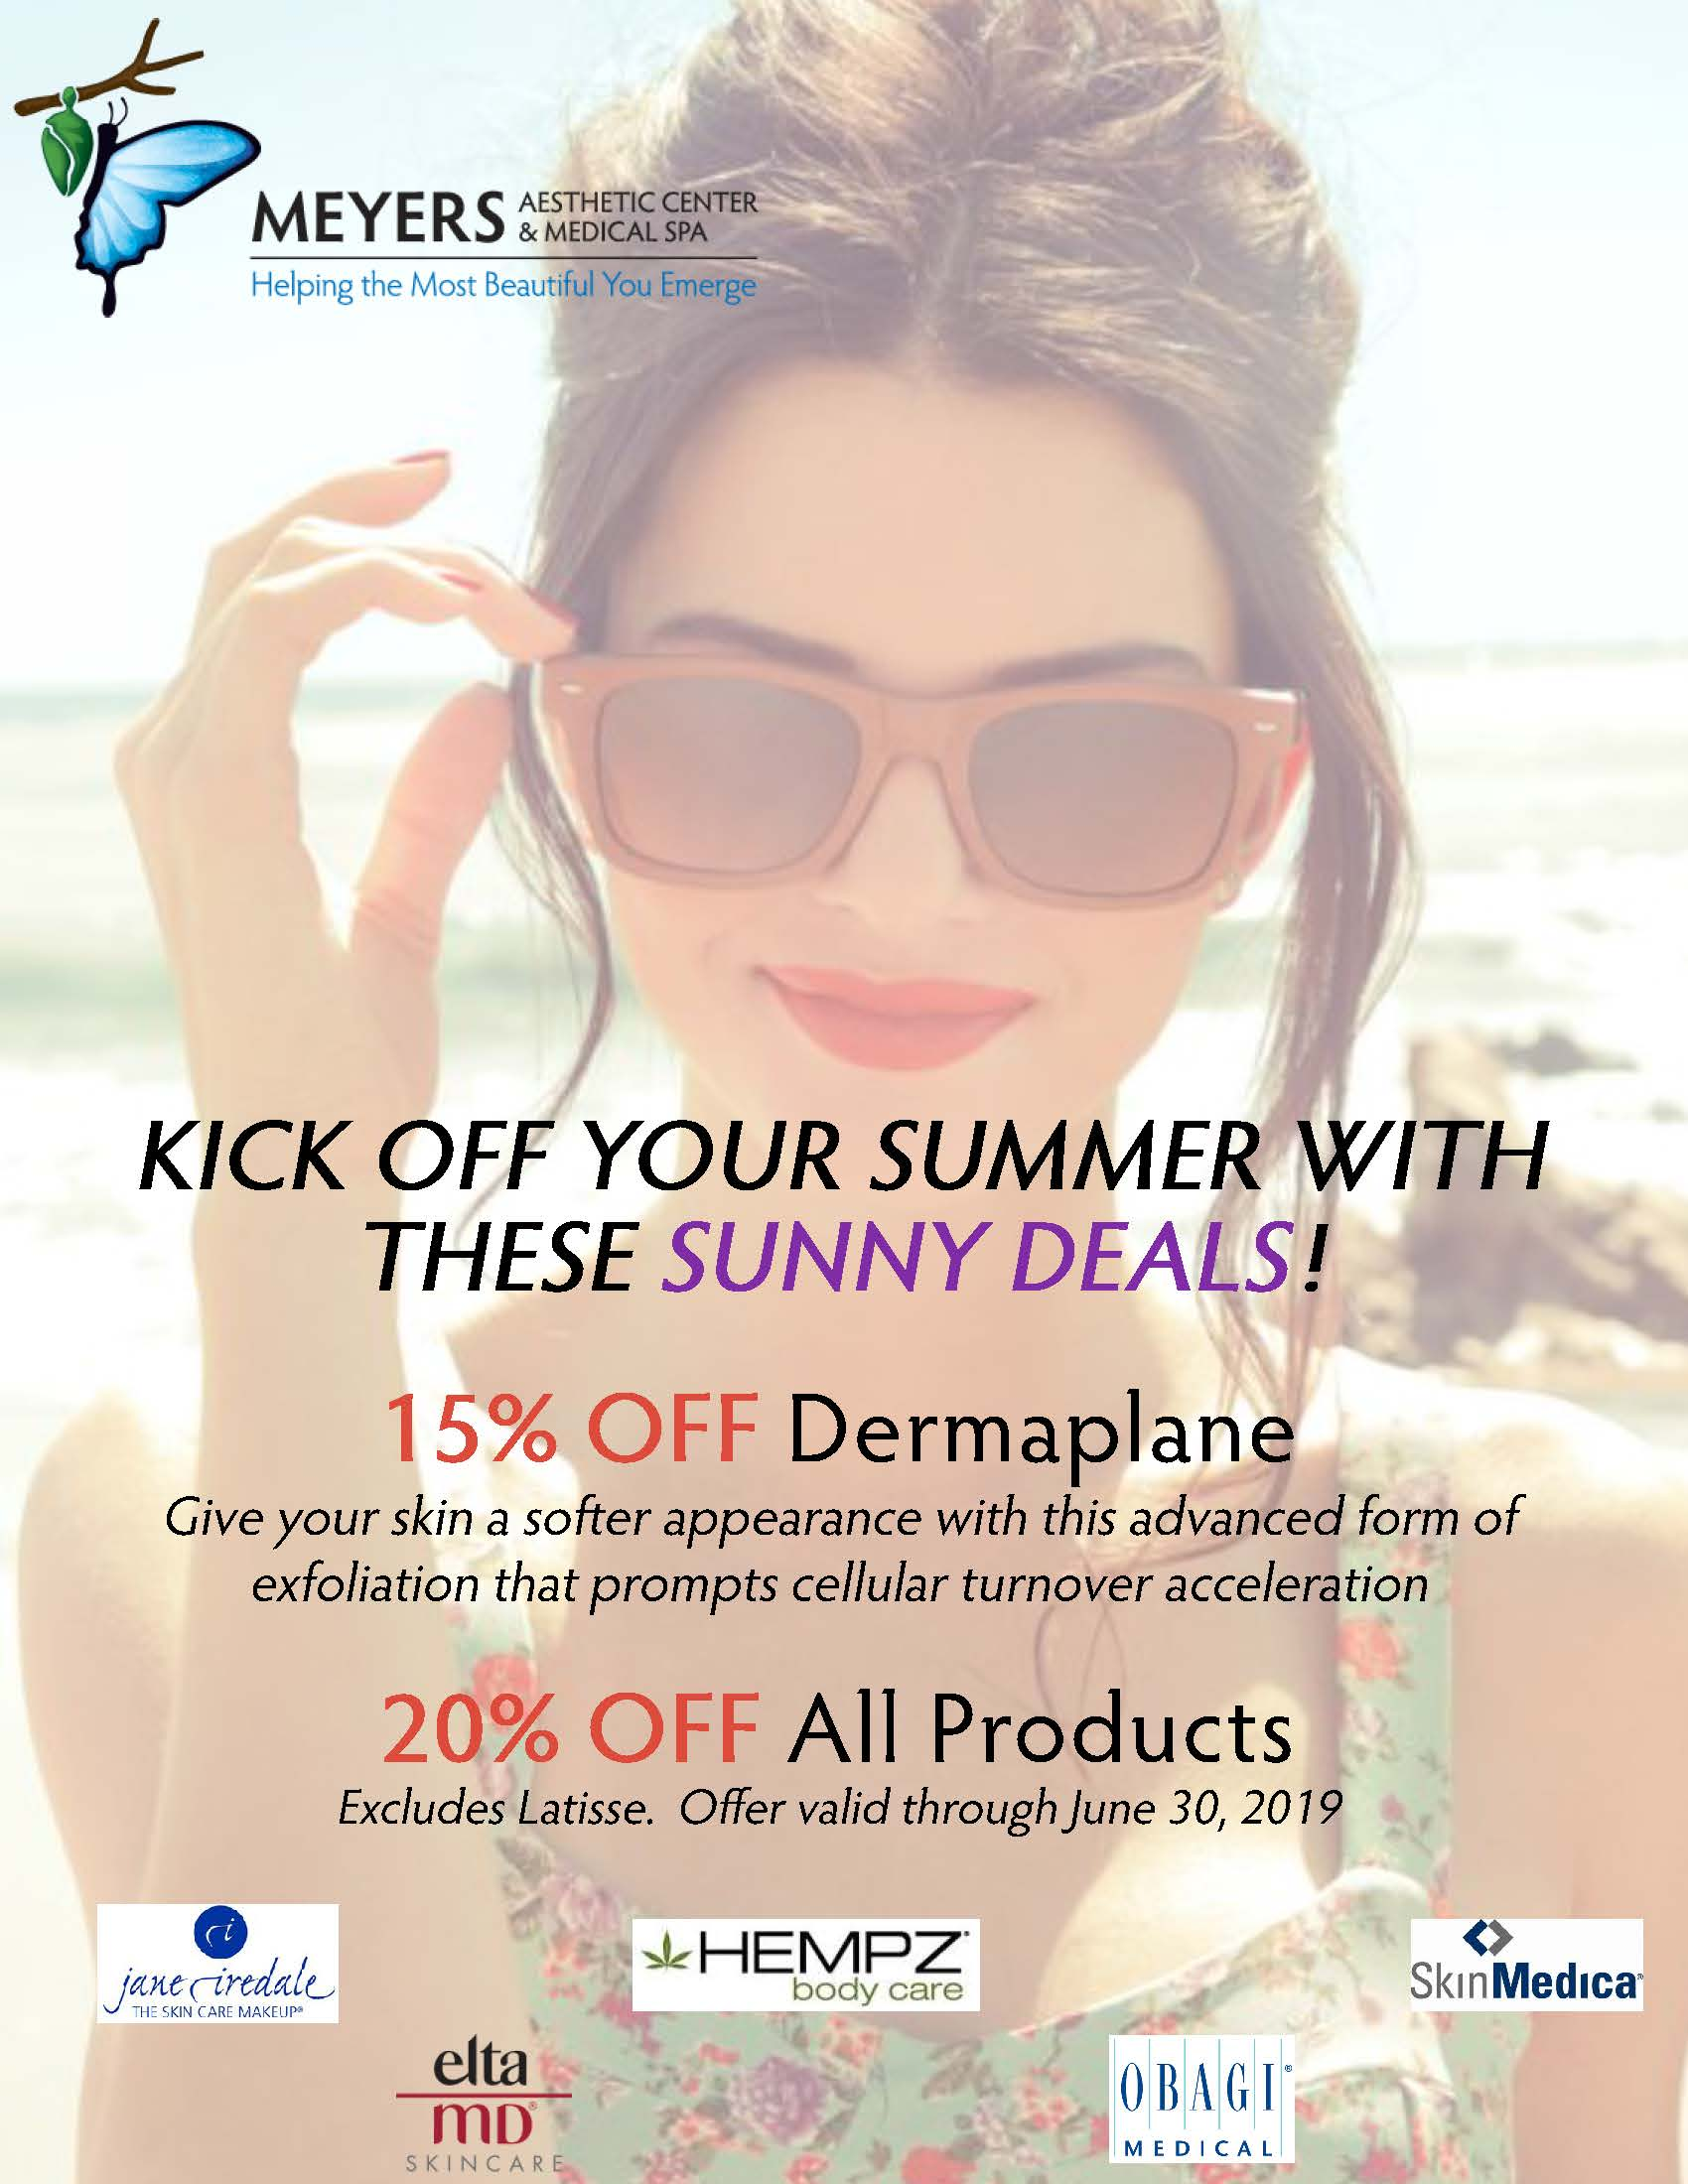 Boulder Eye Care & Surgery Center Doctors June 2019 Specials - Special Savings & Events